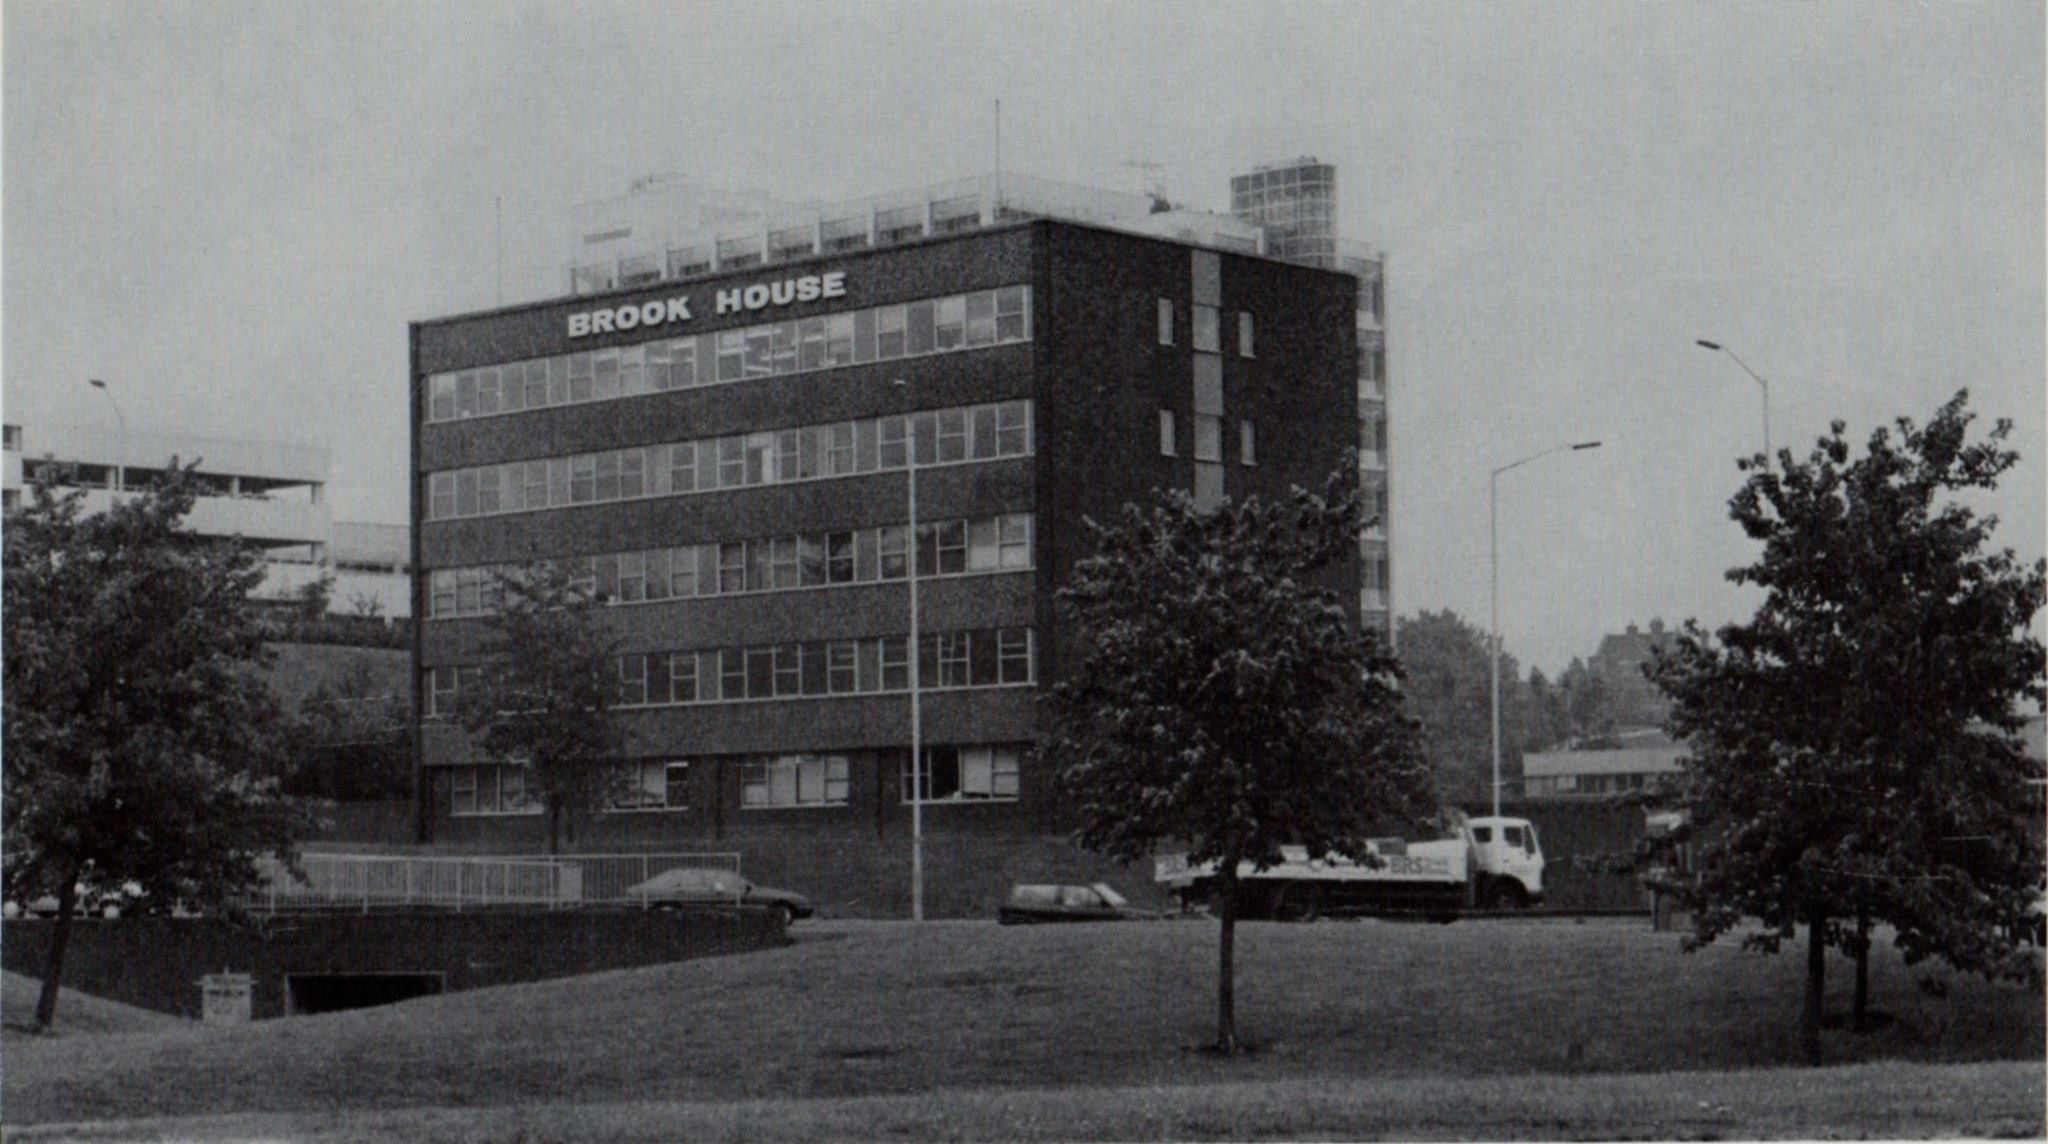 Brook house near Victory roundabout before it was demolished to